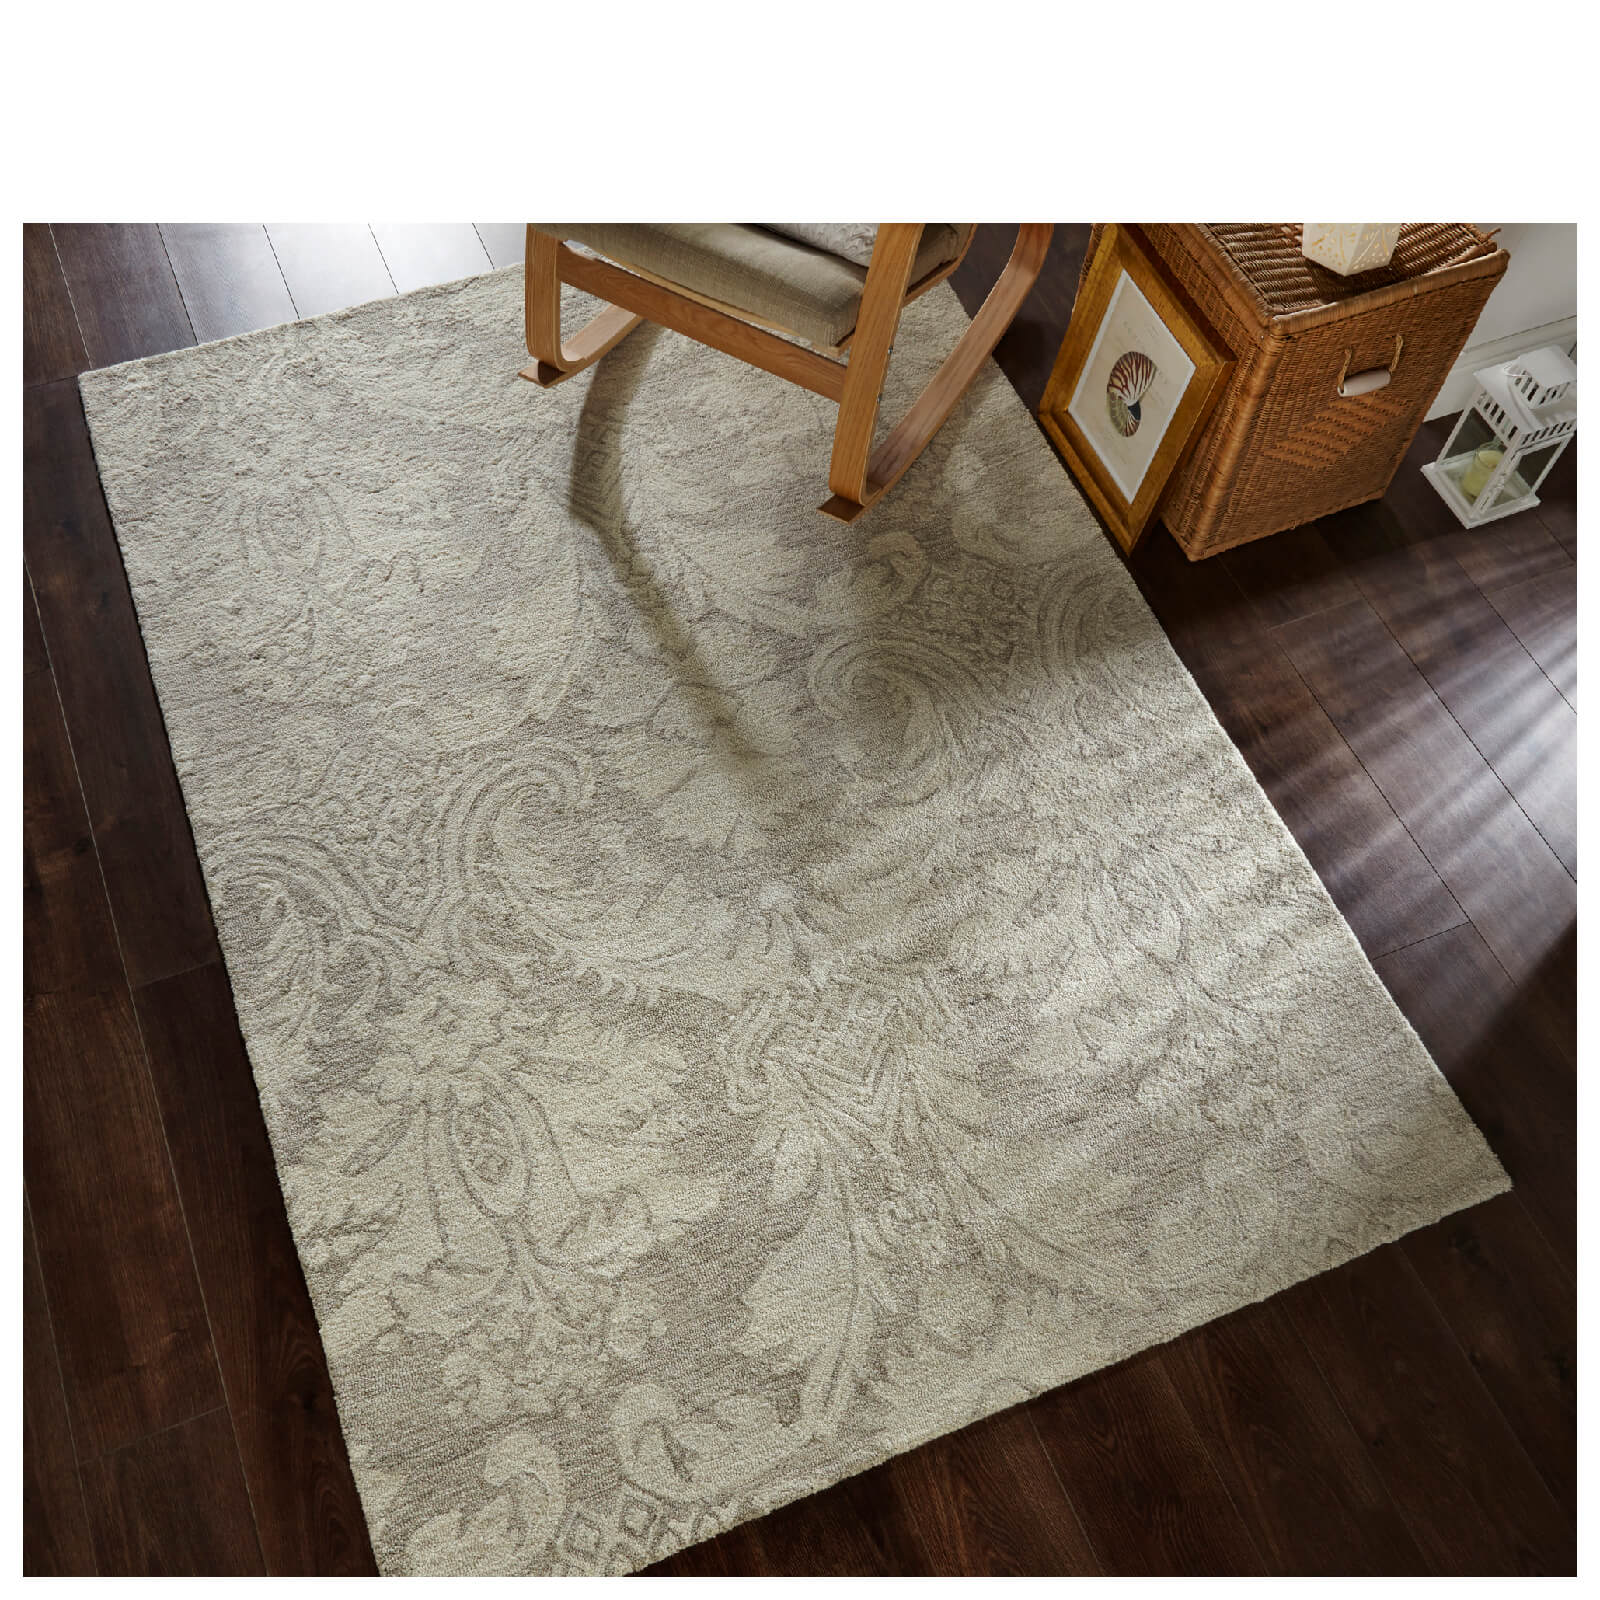 Flair Vintage Deco Rug - Lalique Natural